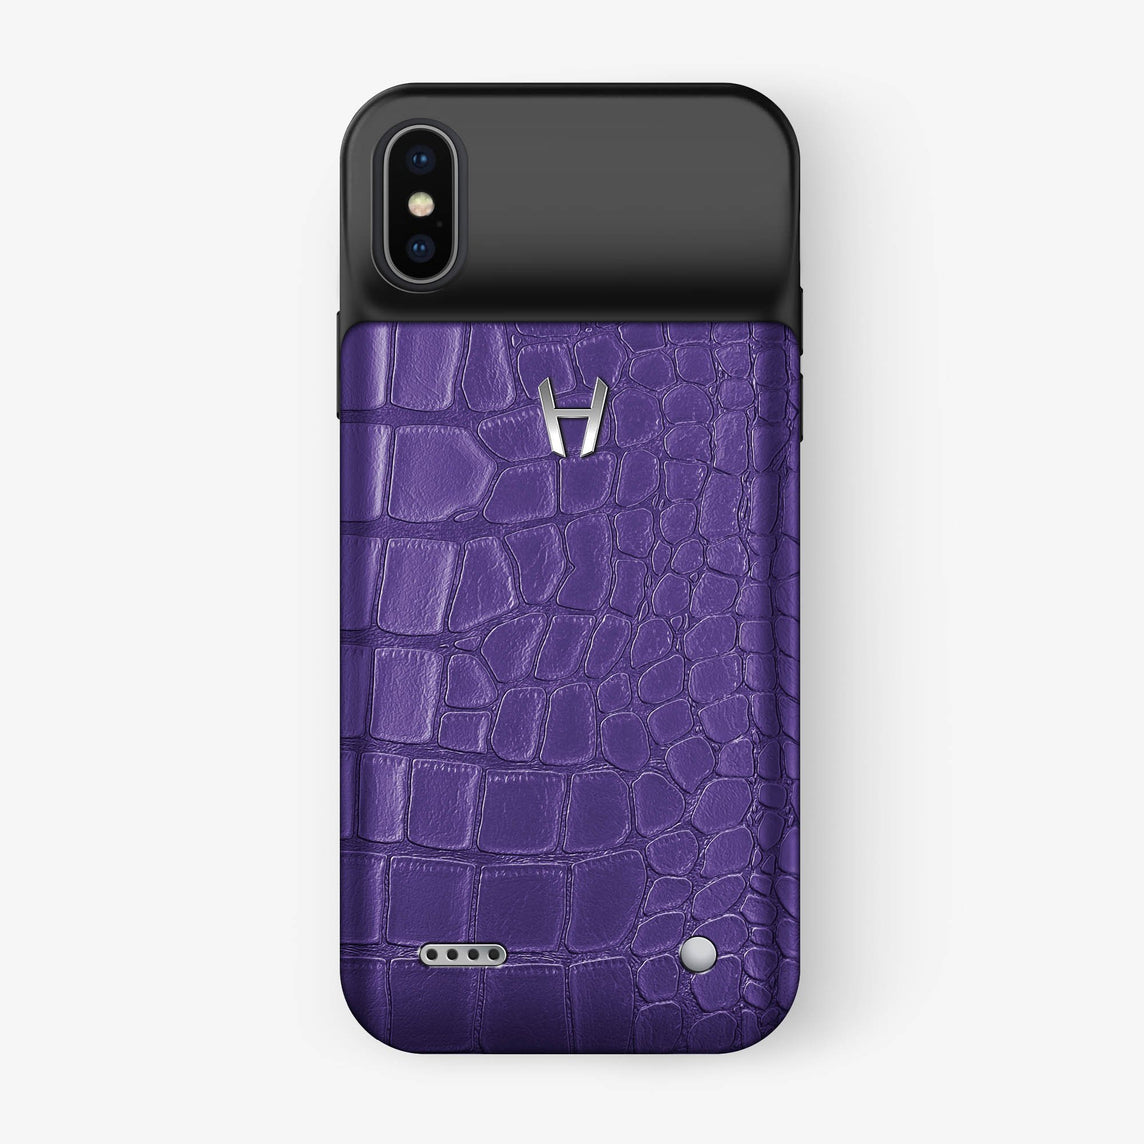 Alligator Battery Case iPhone Xs Max | Purple - Stainless Steel